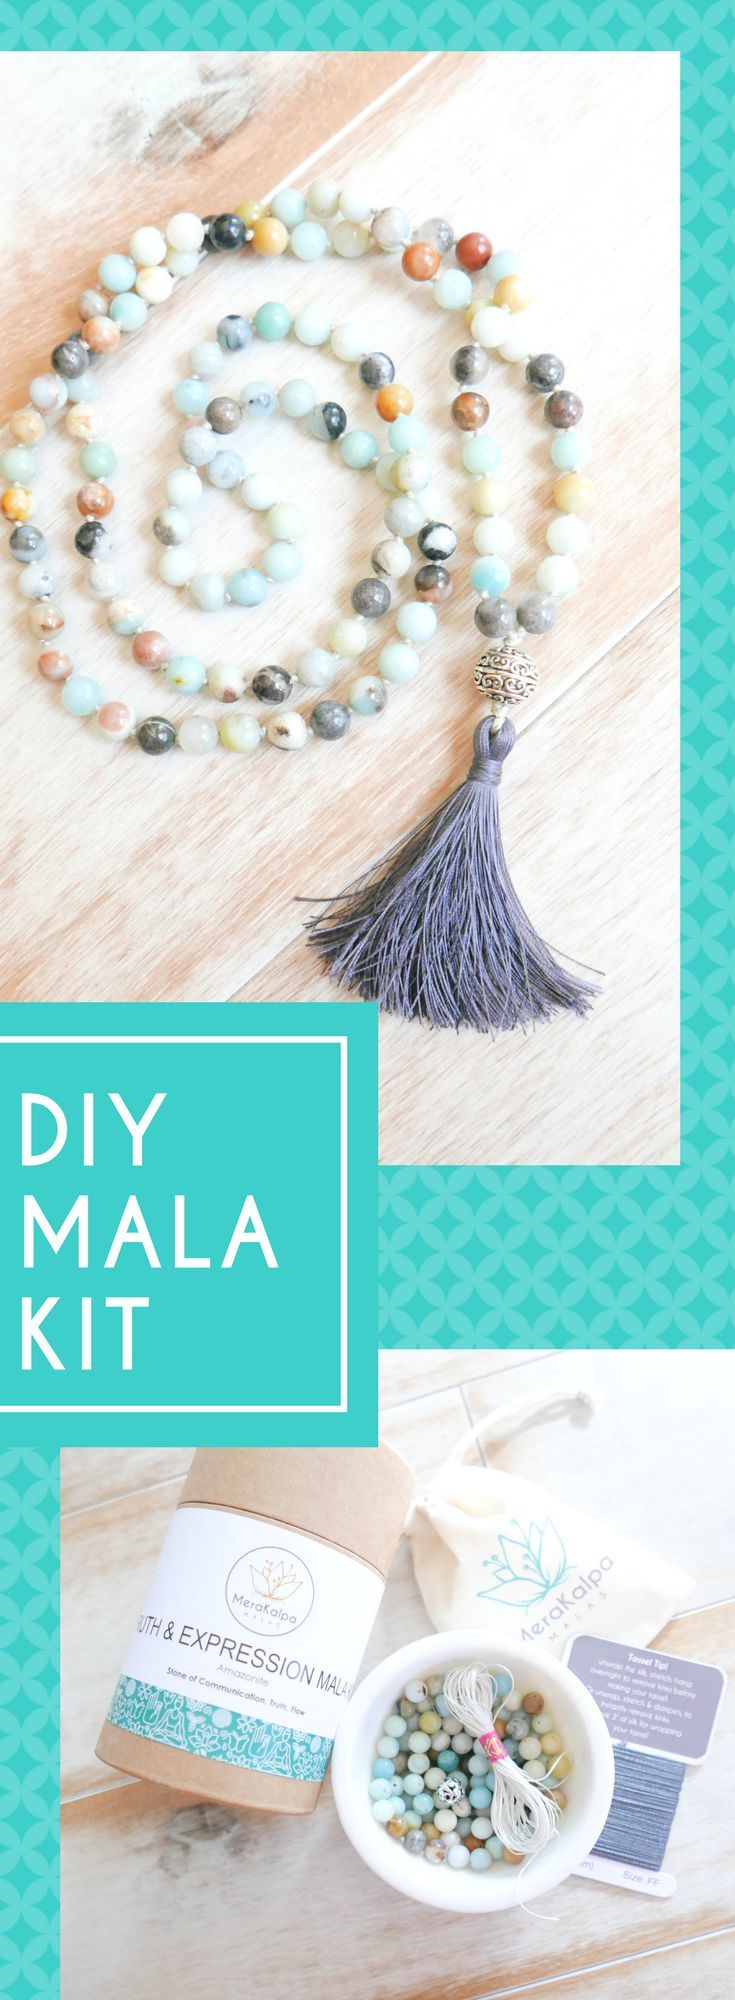 Truth Expression Mala Kit Mala Necklace Diy Mala Meditation